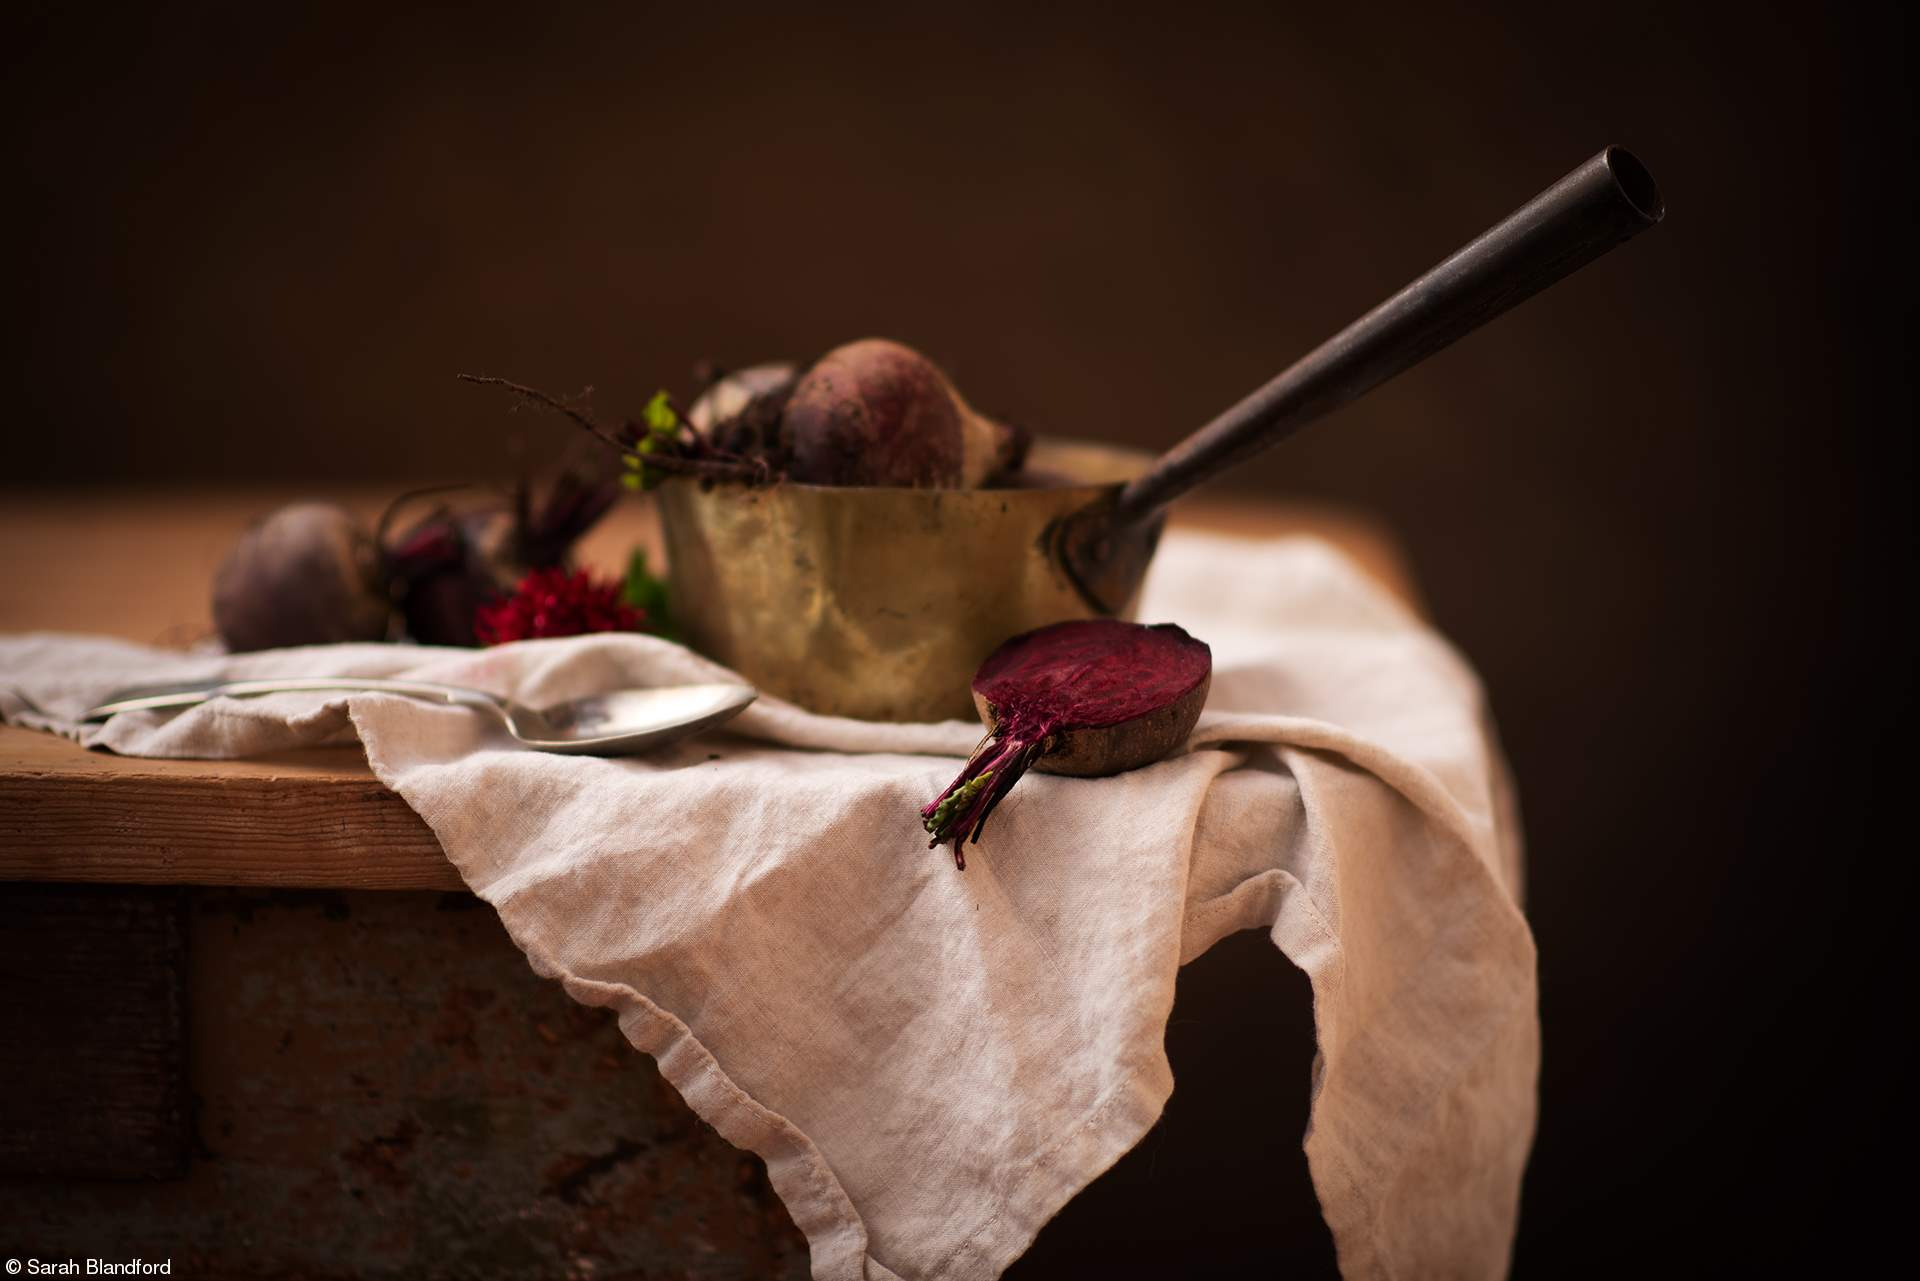 Student Food Photographer of the Year supported by The Royal Photographic Society: Beetroots Still Life